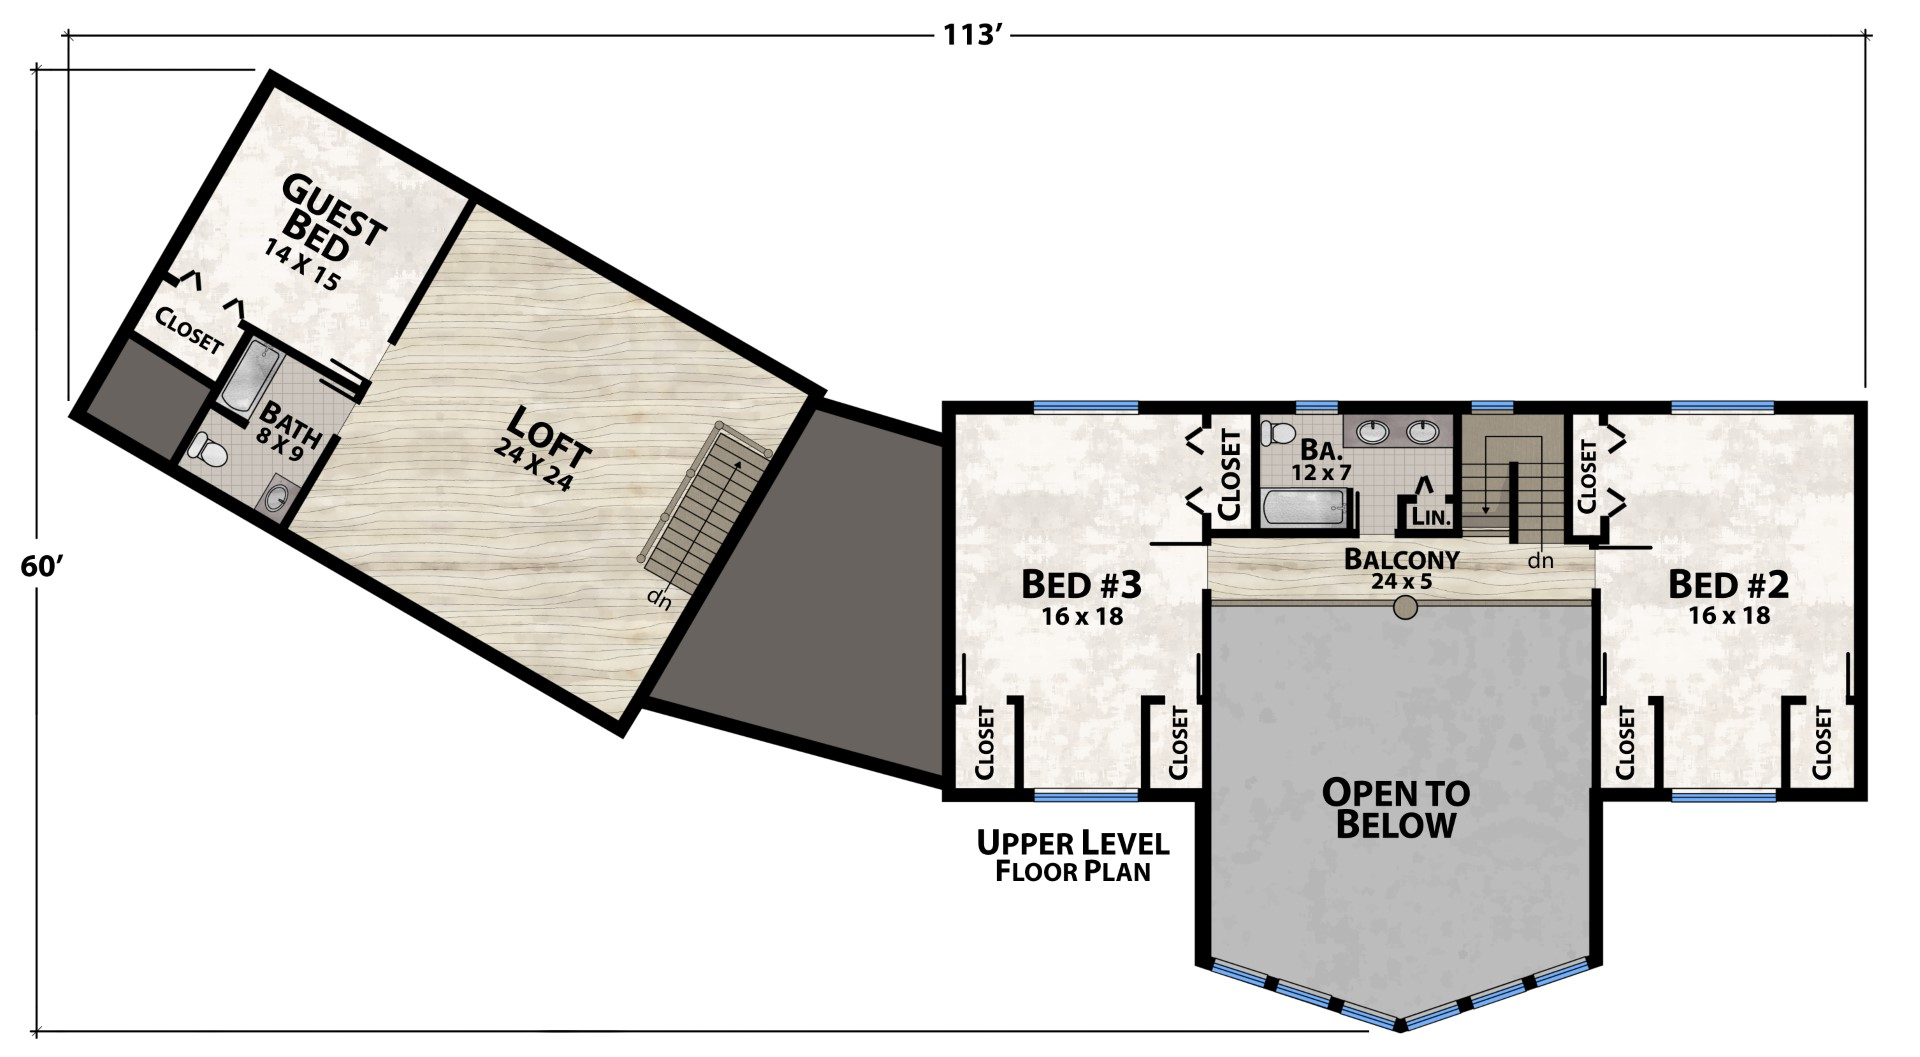 Black Bear Lodge Upper Floor Plan